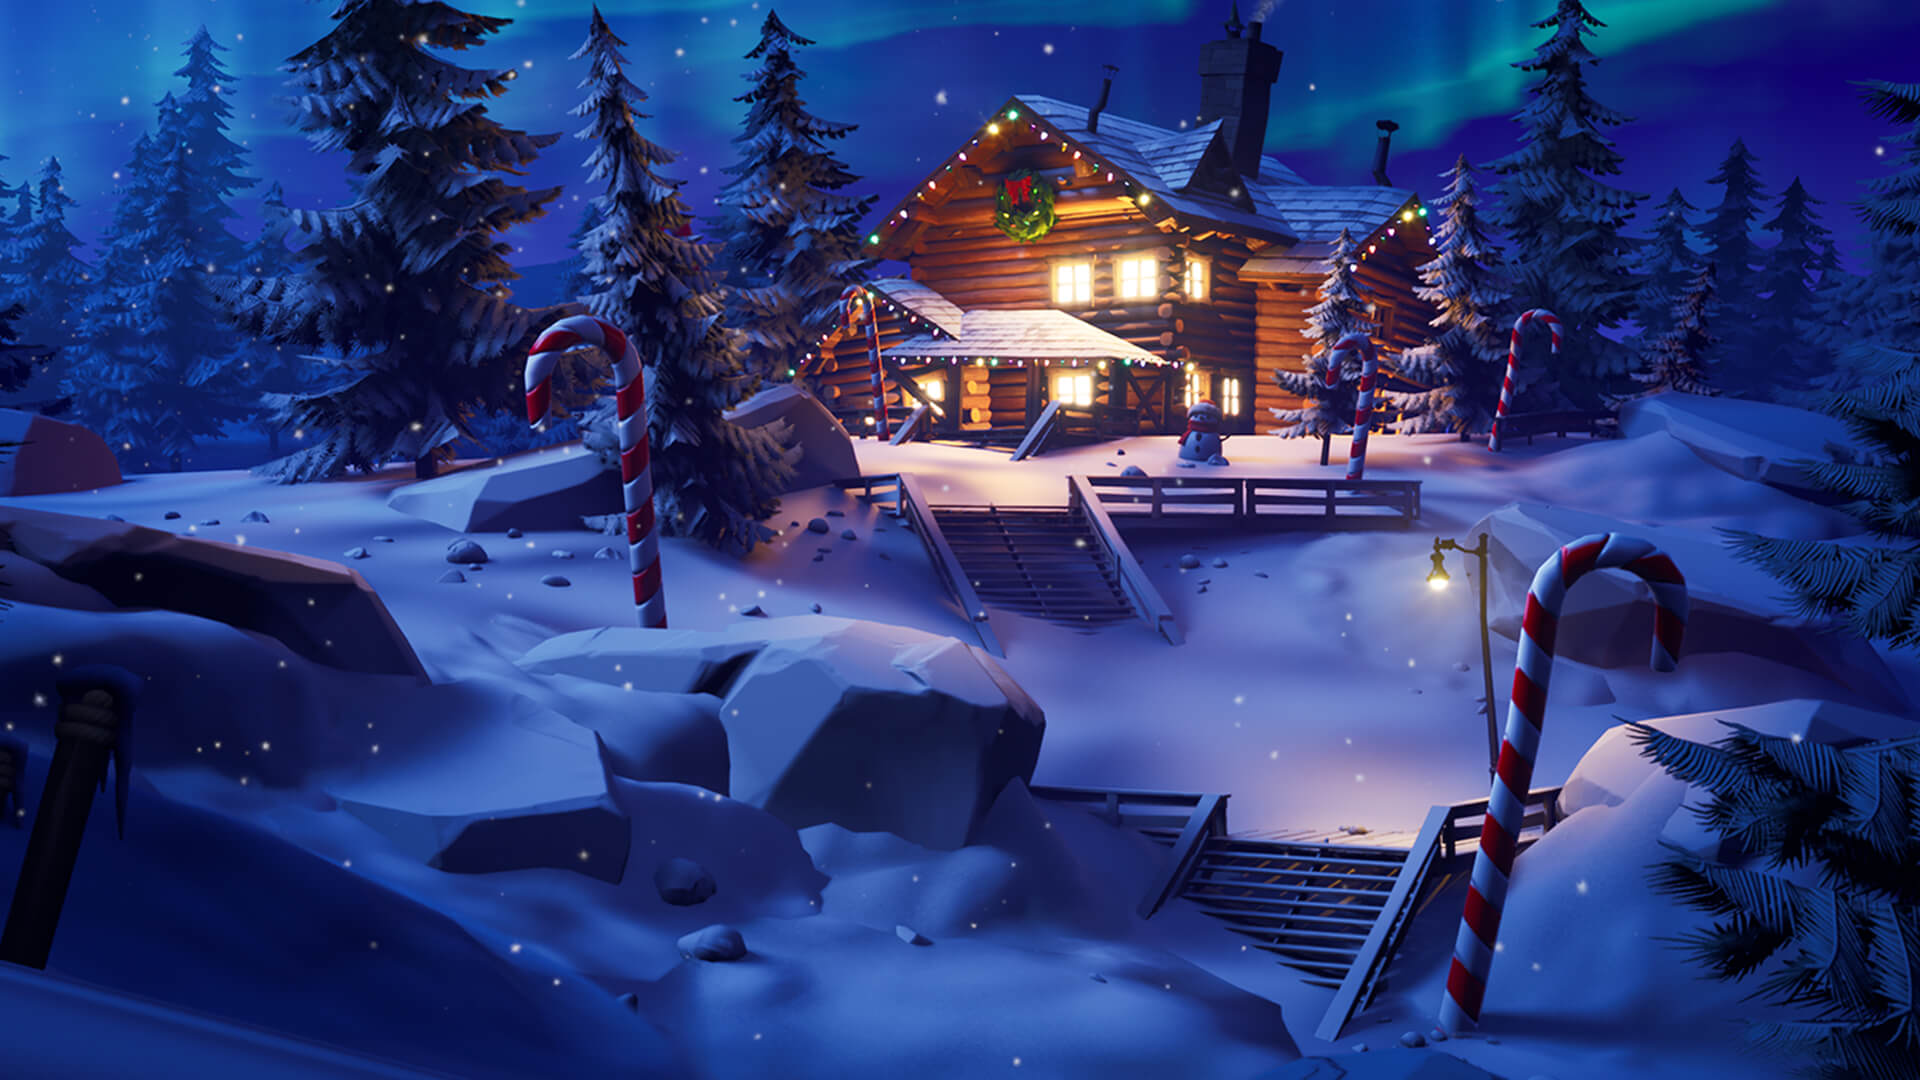 Fortnite players get free skins, and more, for the holidays